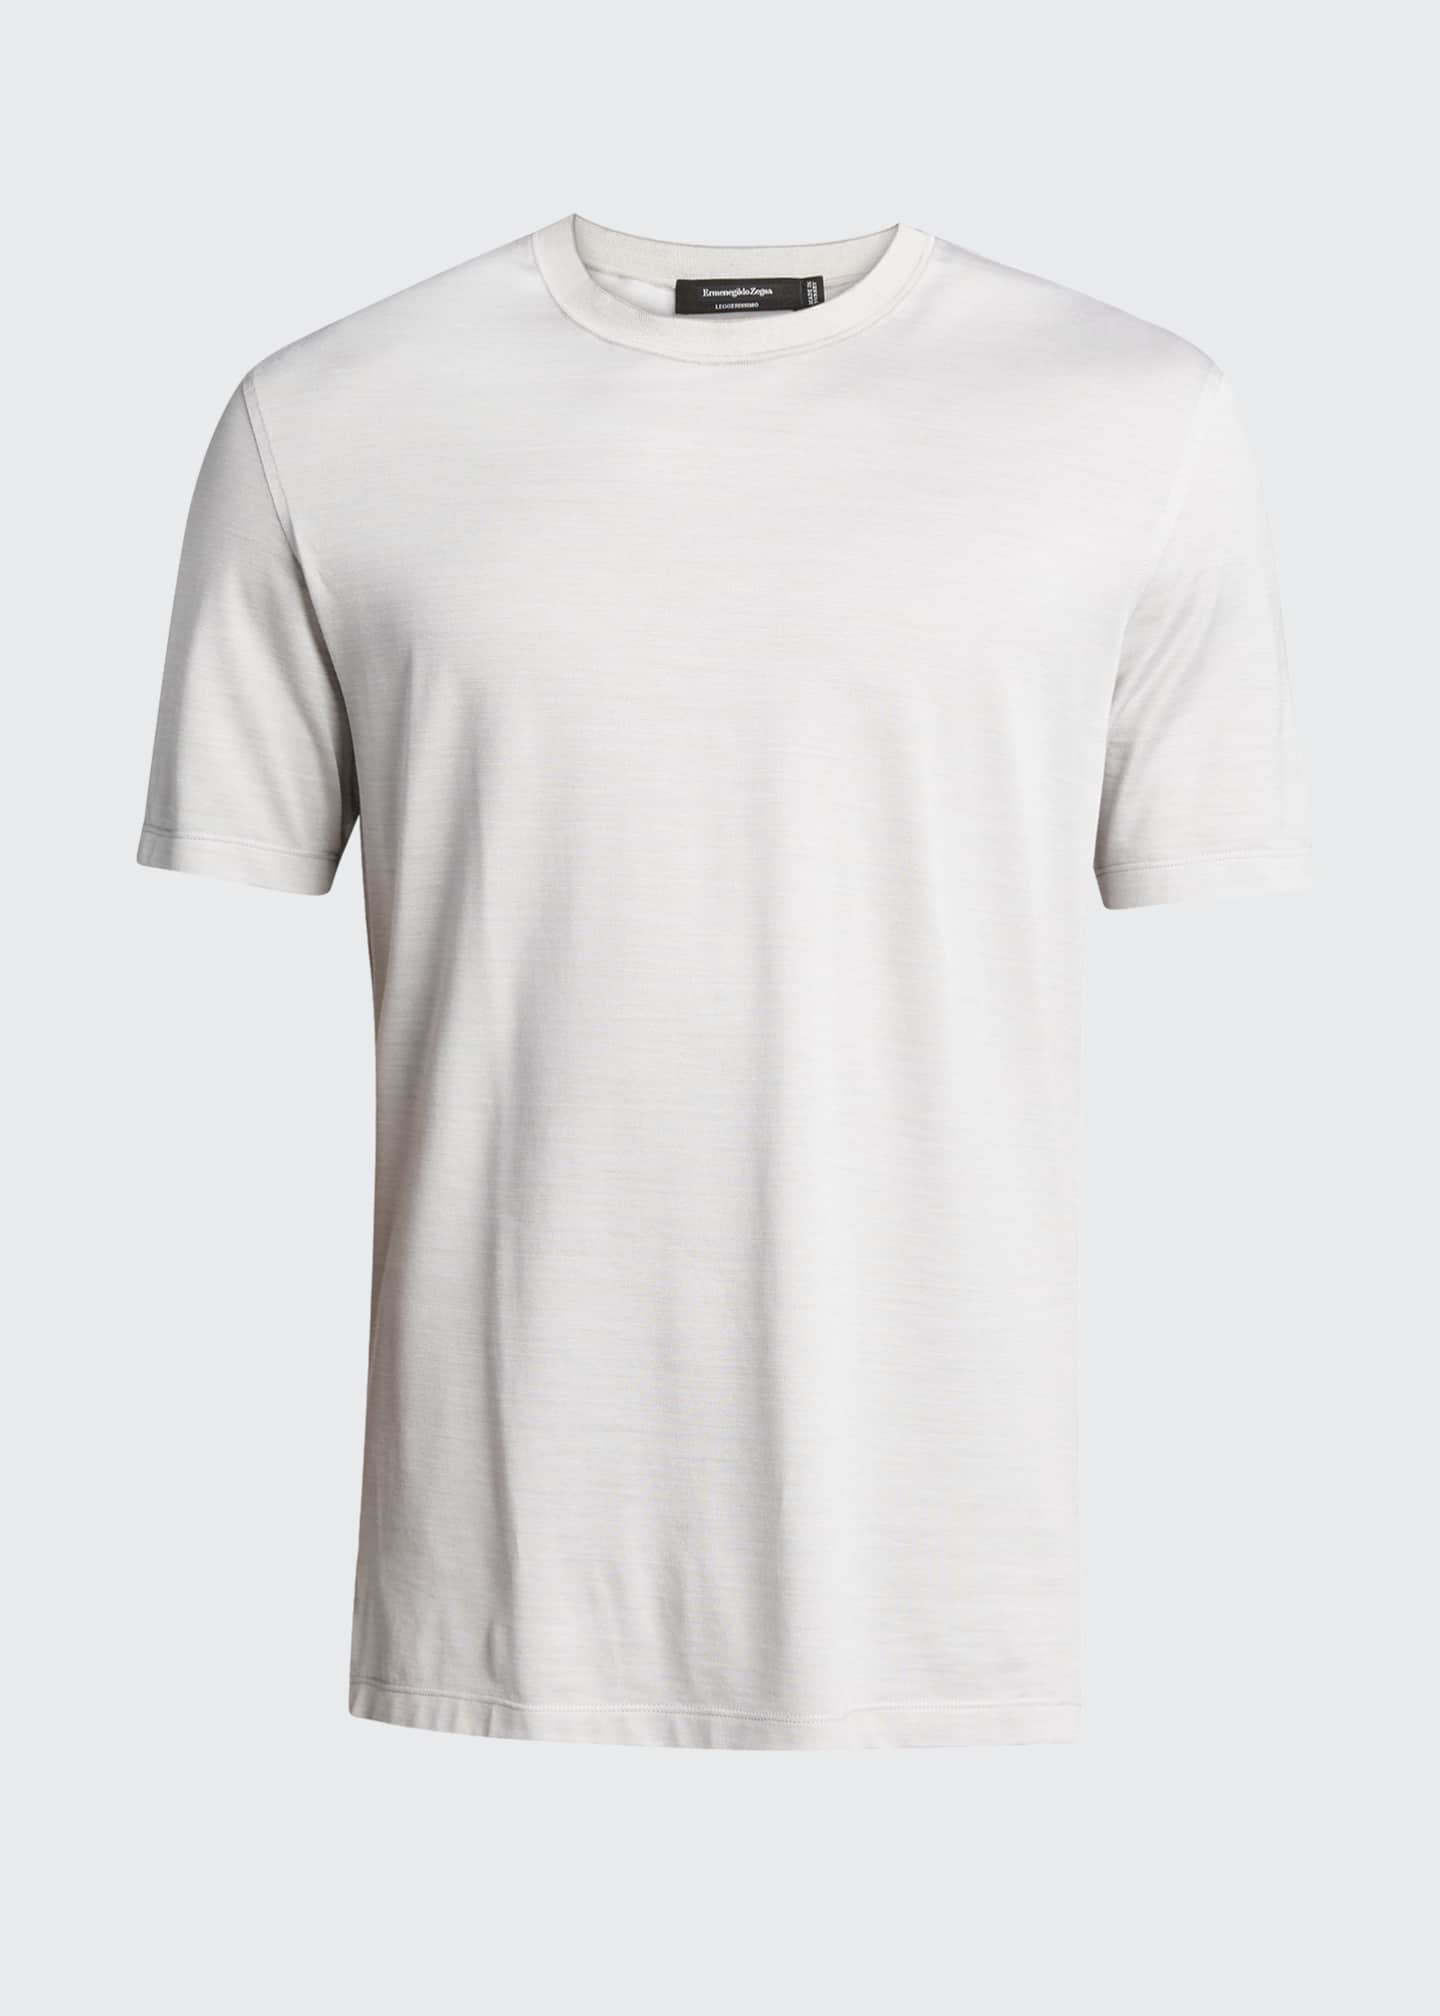 Image 5 of 5: Men's Regular-Fit Lightweight Silk-Cotton T-Shirt